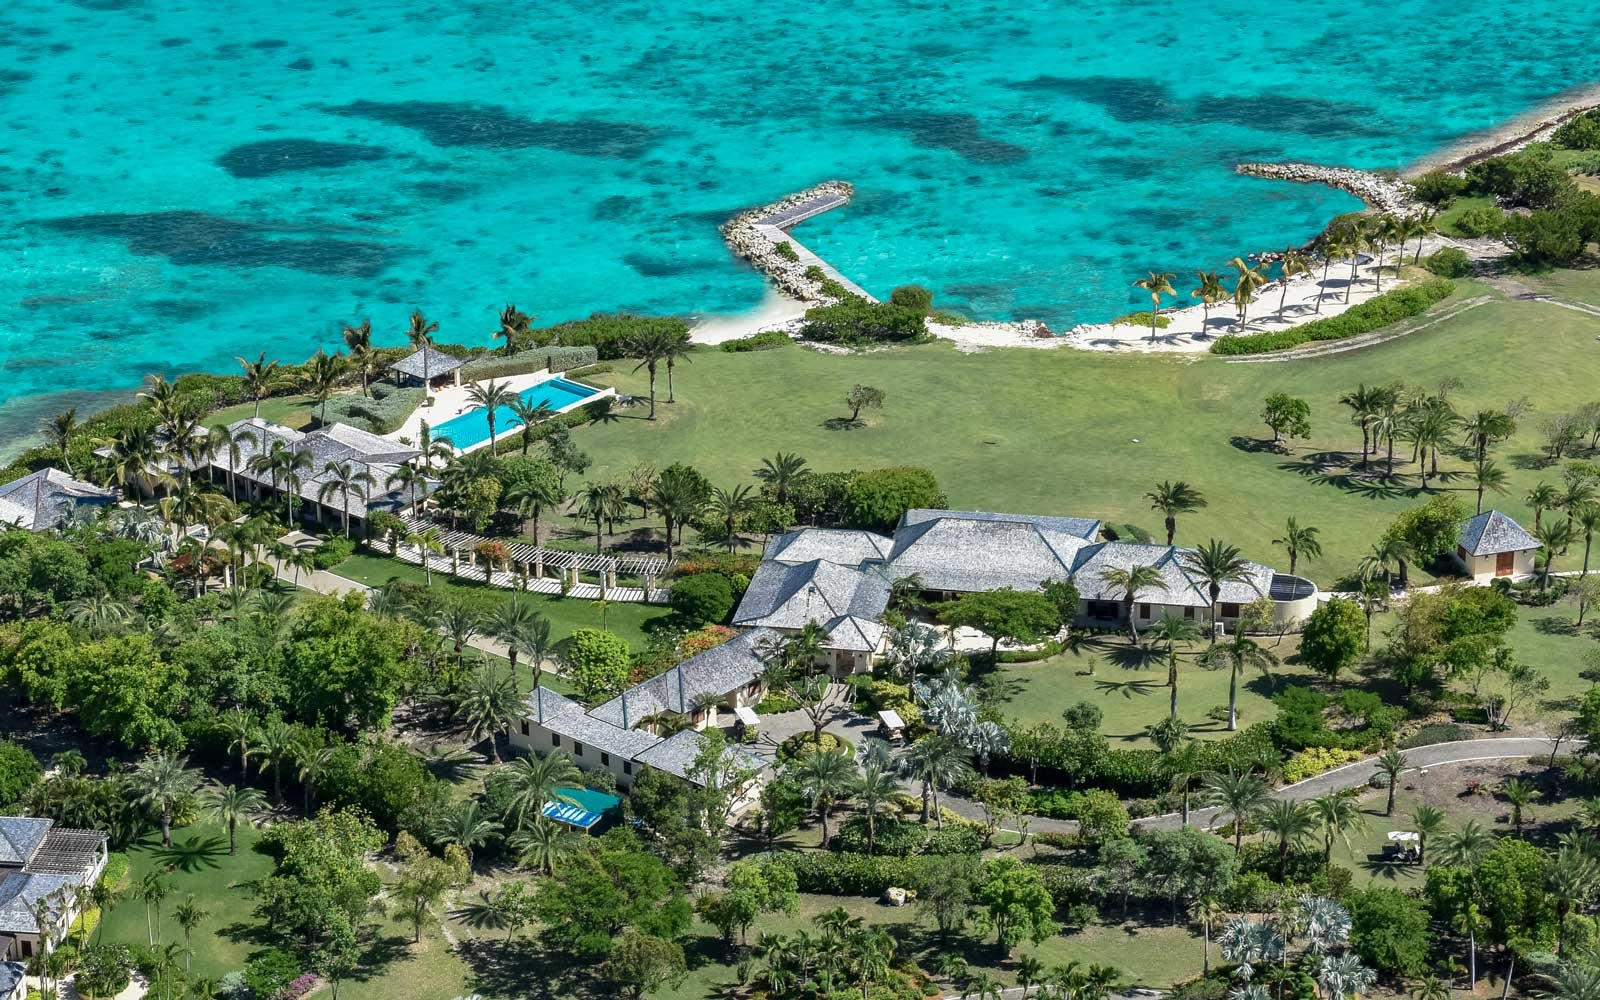 Aerial view of the Jumby Bay resort complex